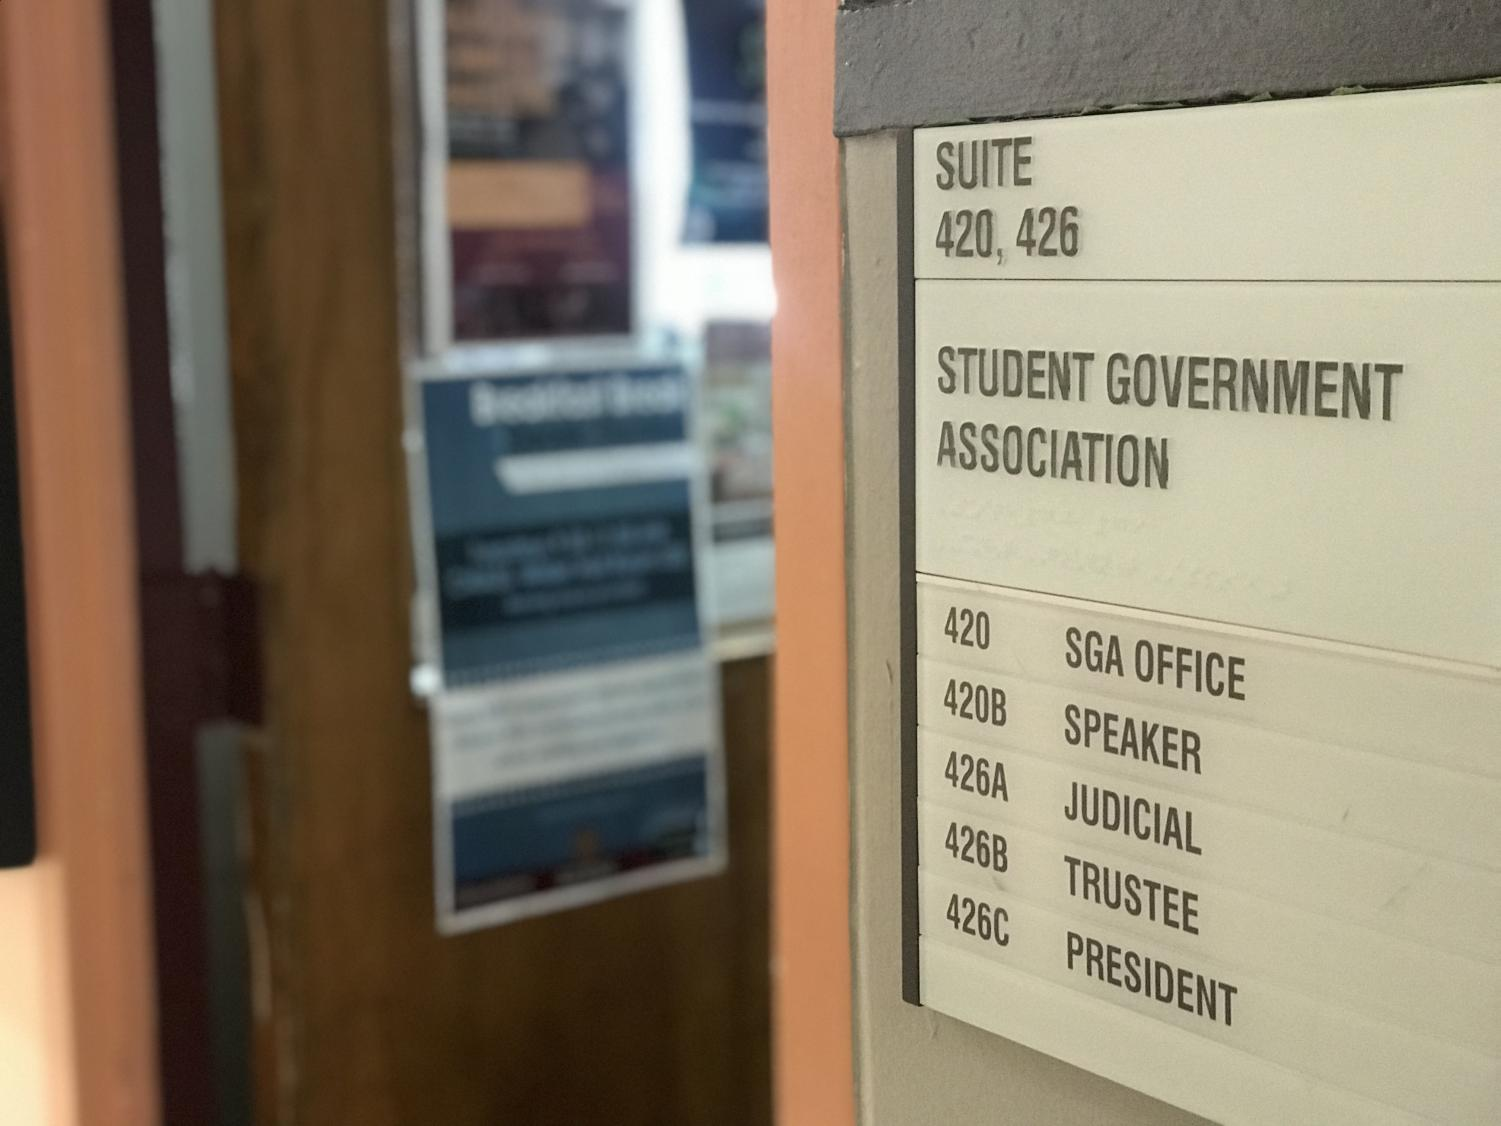 The Student Government Association office is located in Student Union room 420 (Elissa Borden/Amherst Wire).